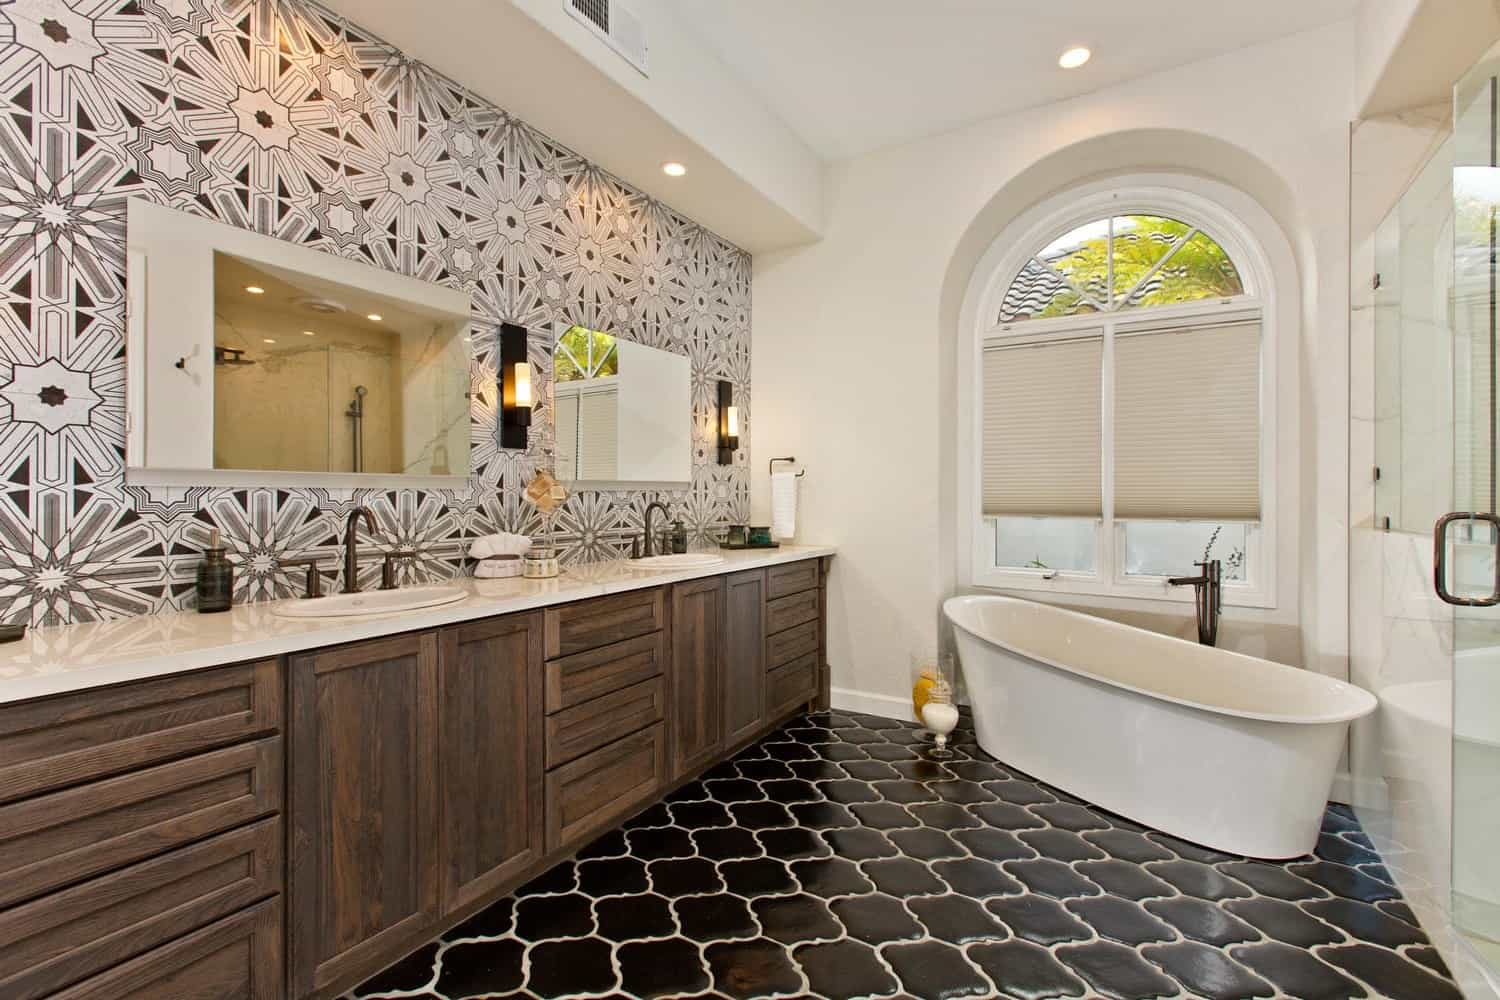 Black And White Tiled Wallpaper For Luxury Bathroom (Image 1 of 10)